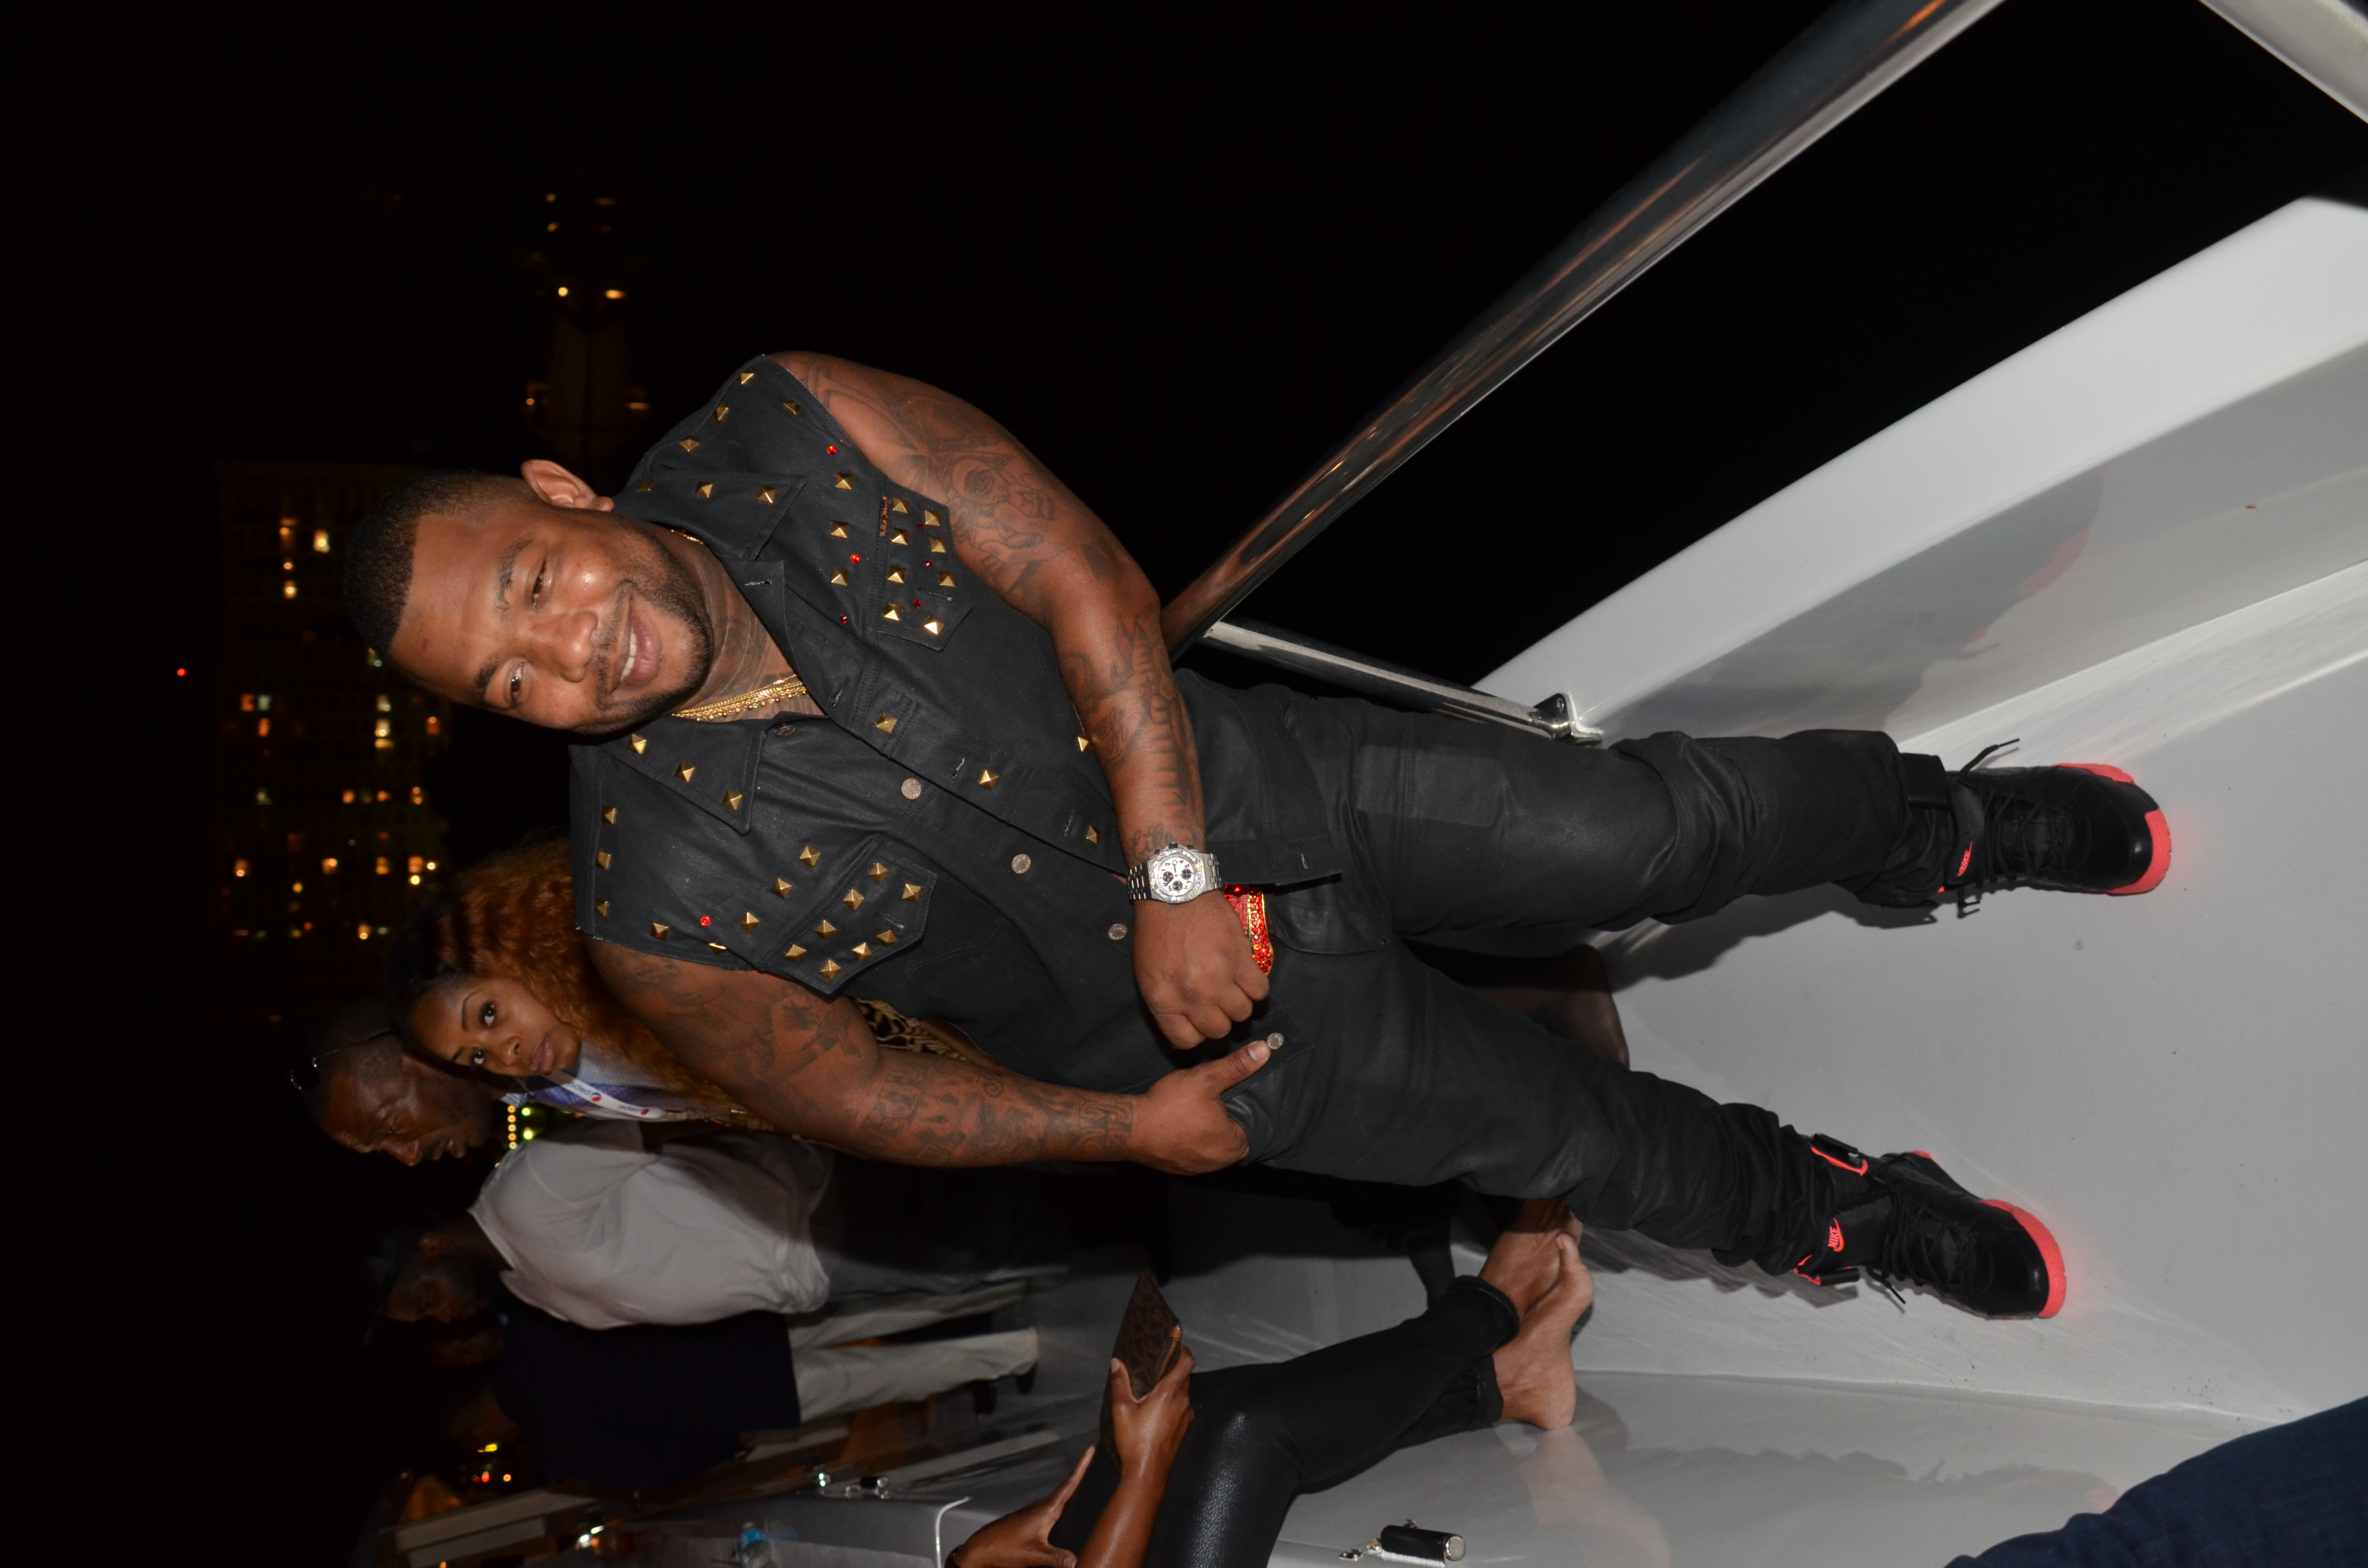 Gorilla Zoe at Revolt Music Conference Yacht Party